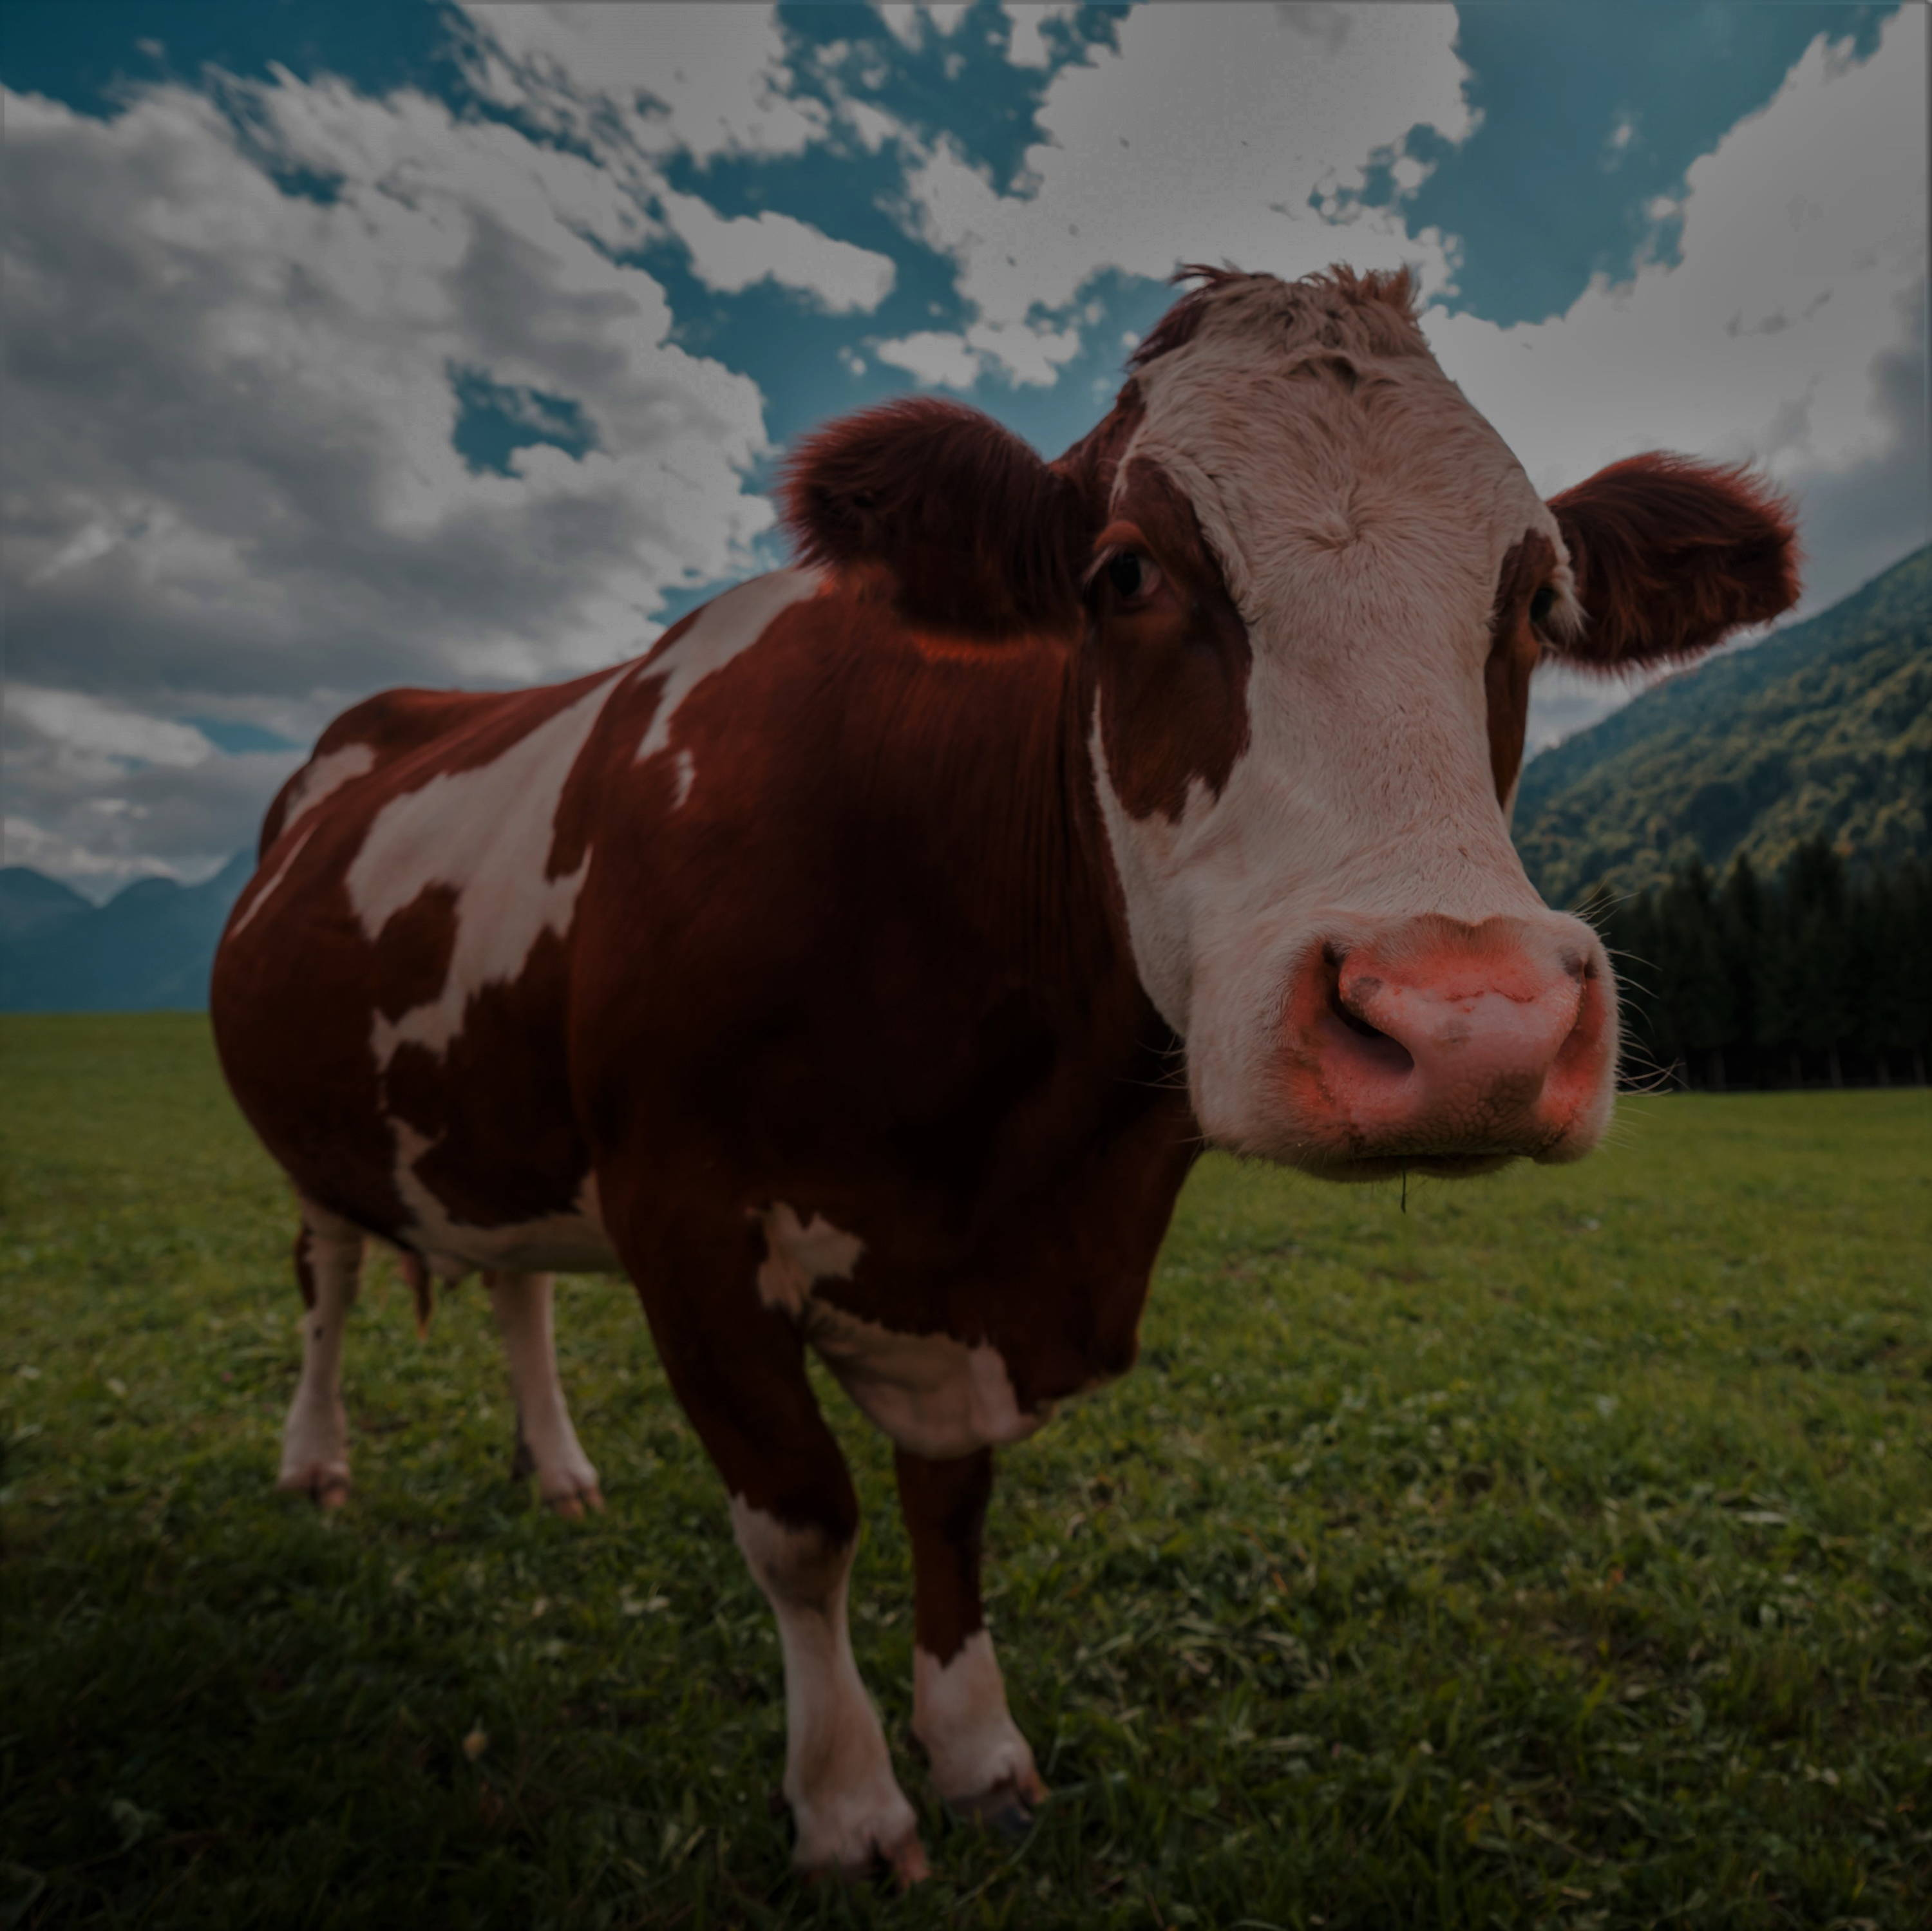 A brown and white dairy cow stood in a grassy field